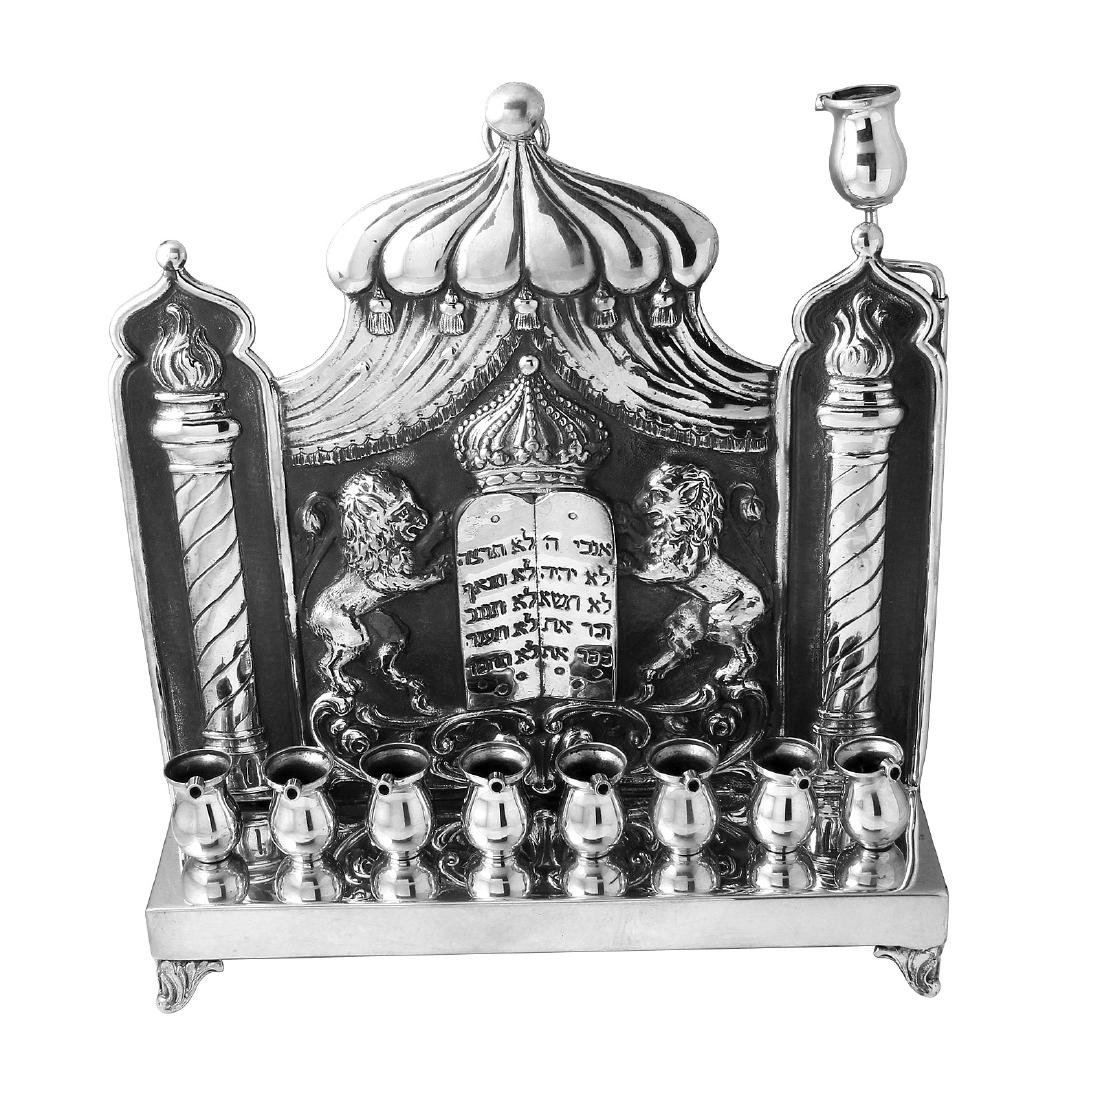 Karl Junker Antique Hanukkah Menorah